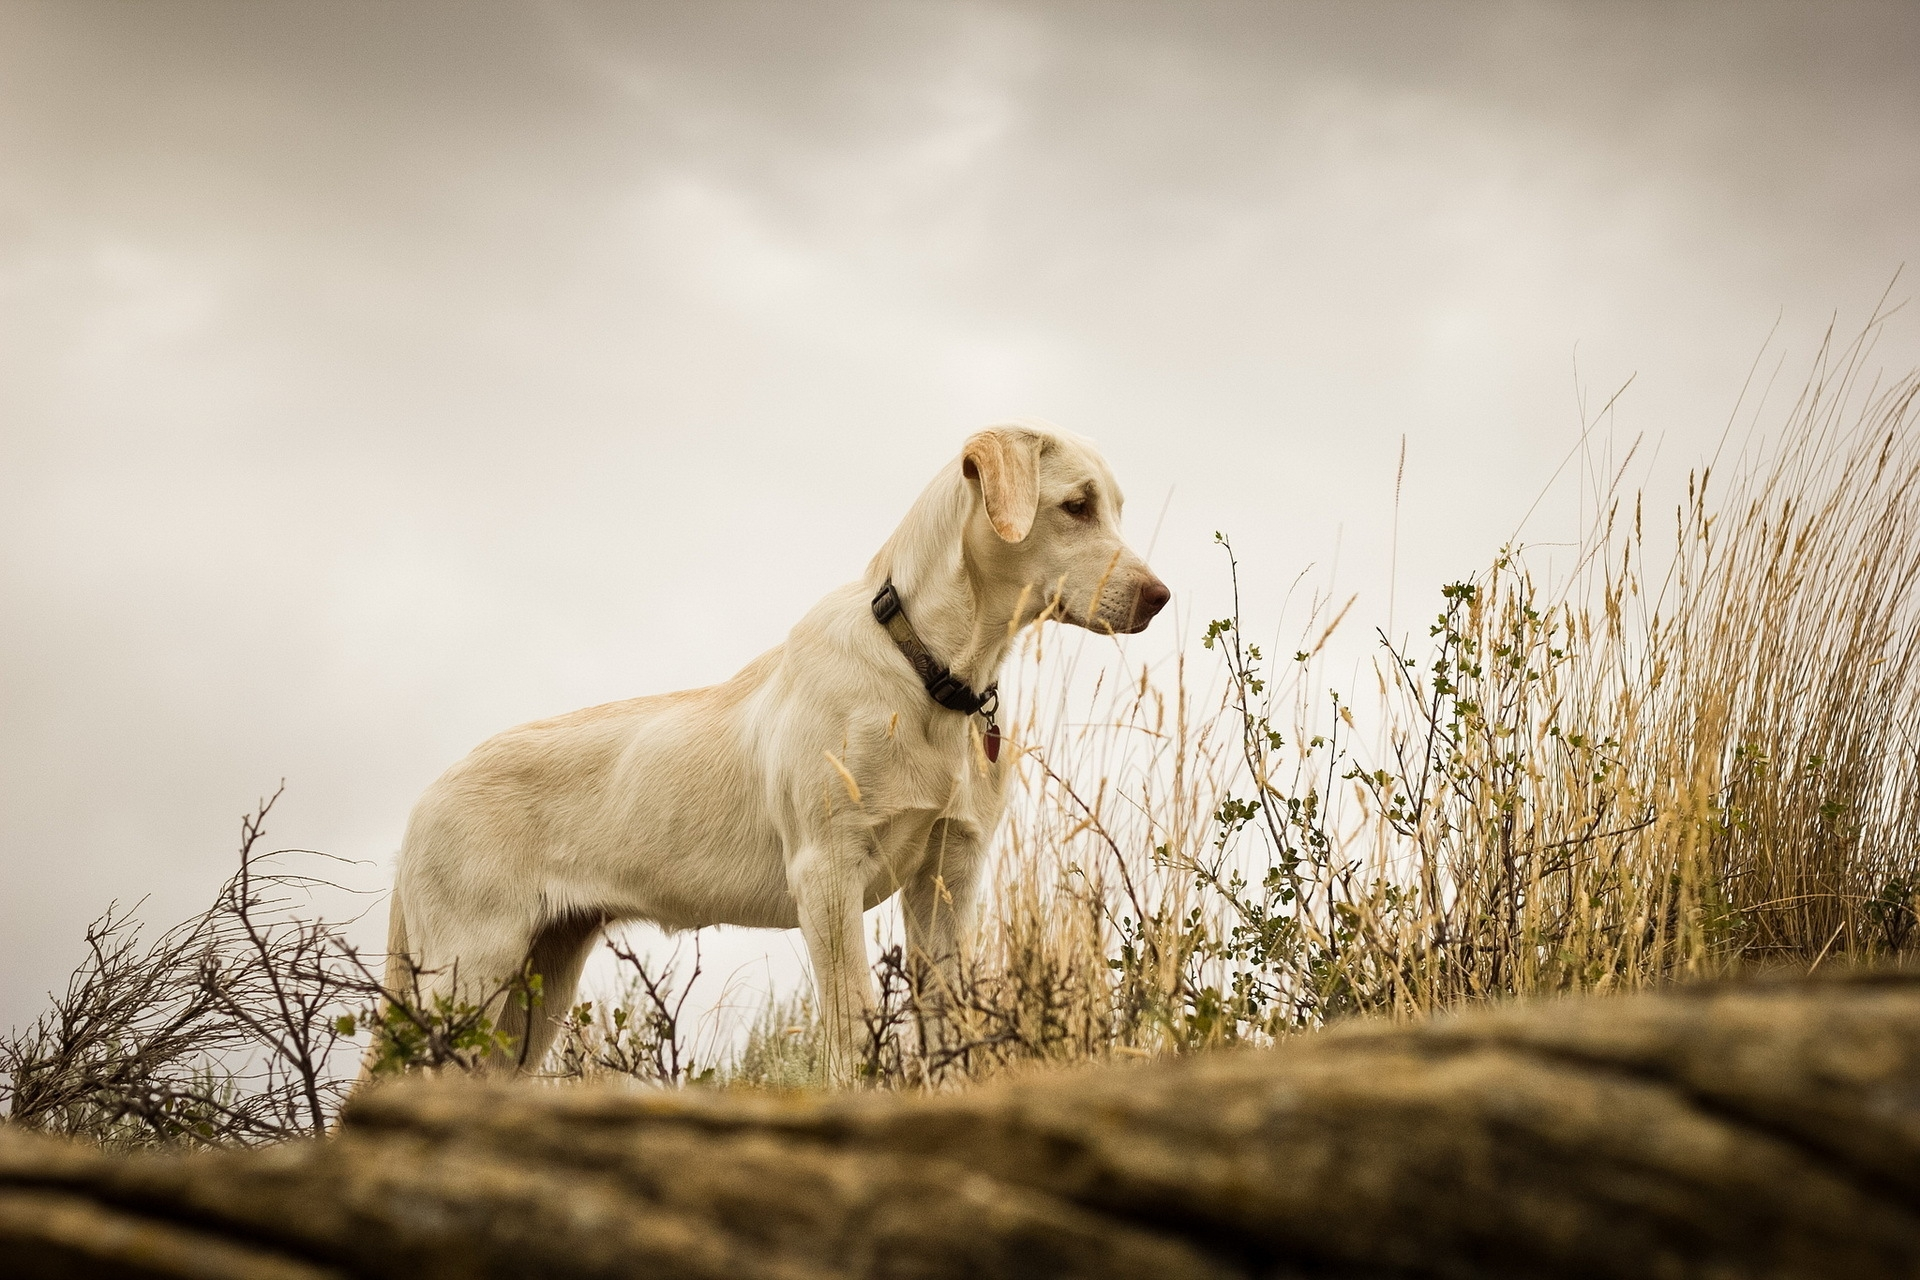 153310 download wallpaper Animals, Dog, Grass, Background, Labrador screensavers and pictures for free